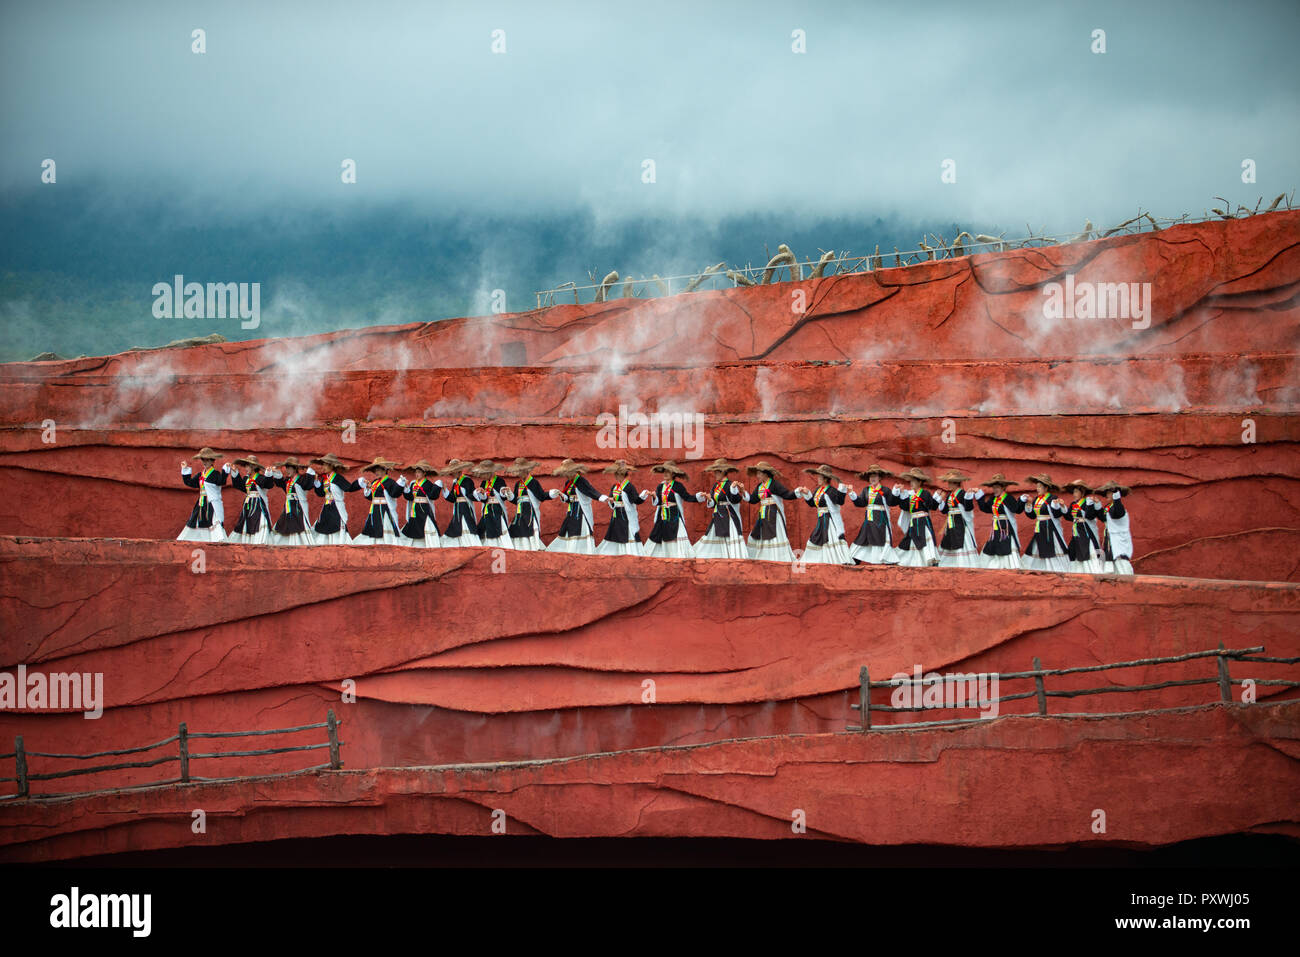 Lijiang Impression stage show held on daily basis with natural Jade Snow Mountain in the background. The show was directed by Zhang Yimou. - Stock Image